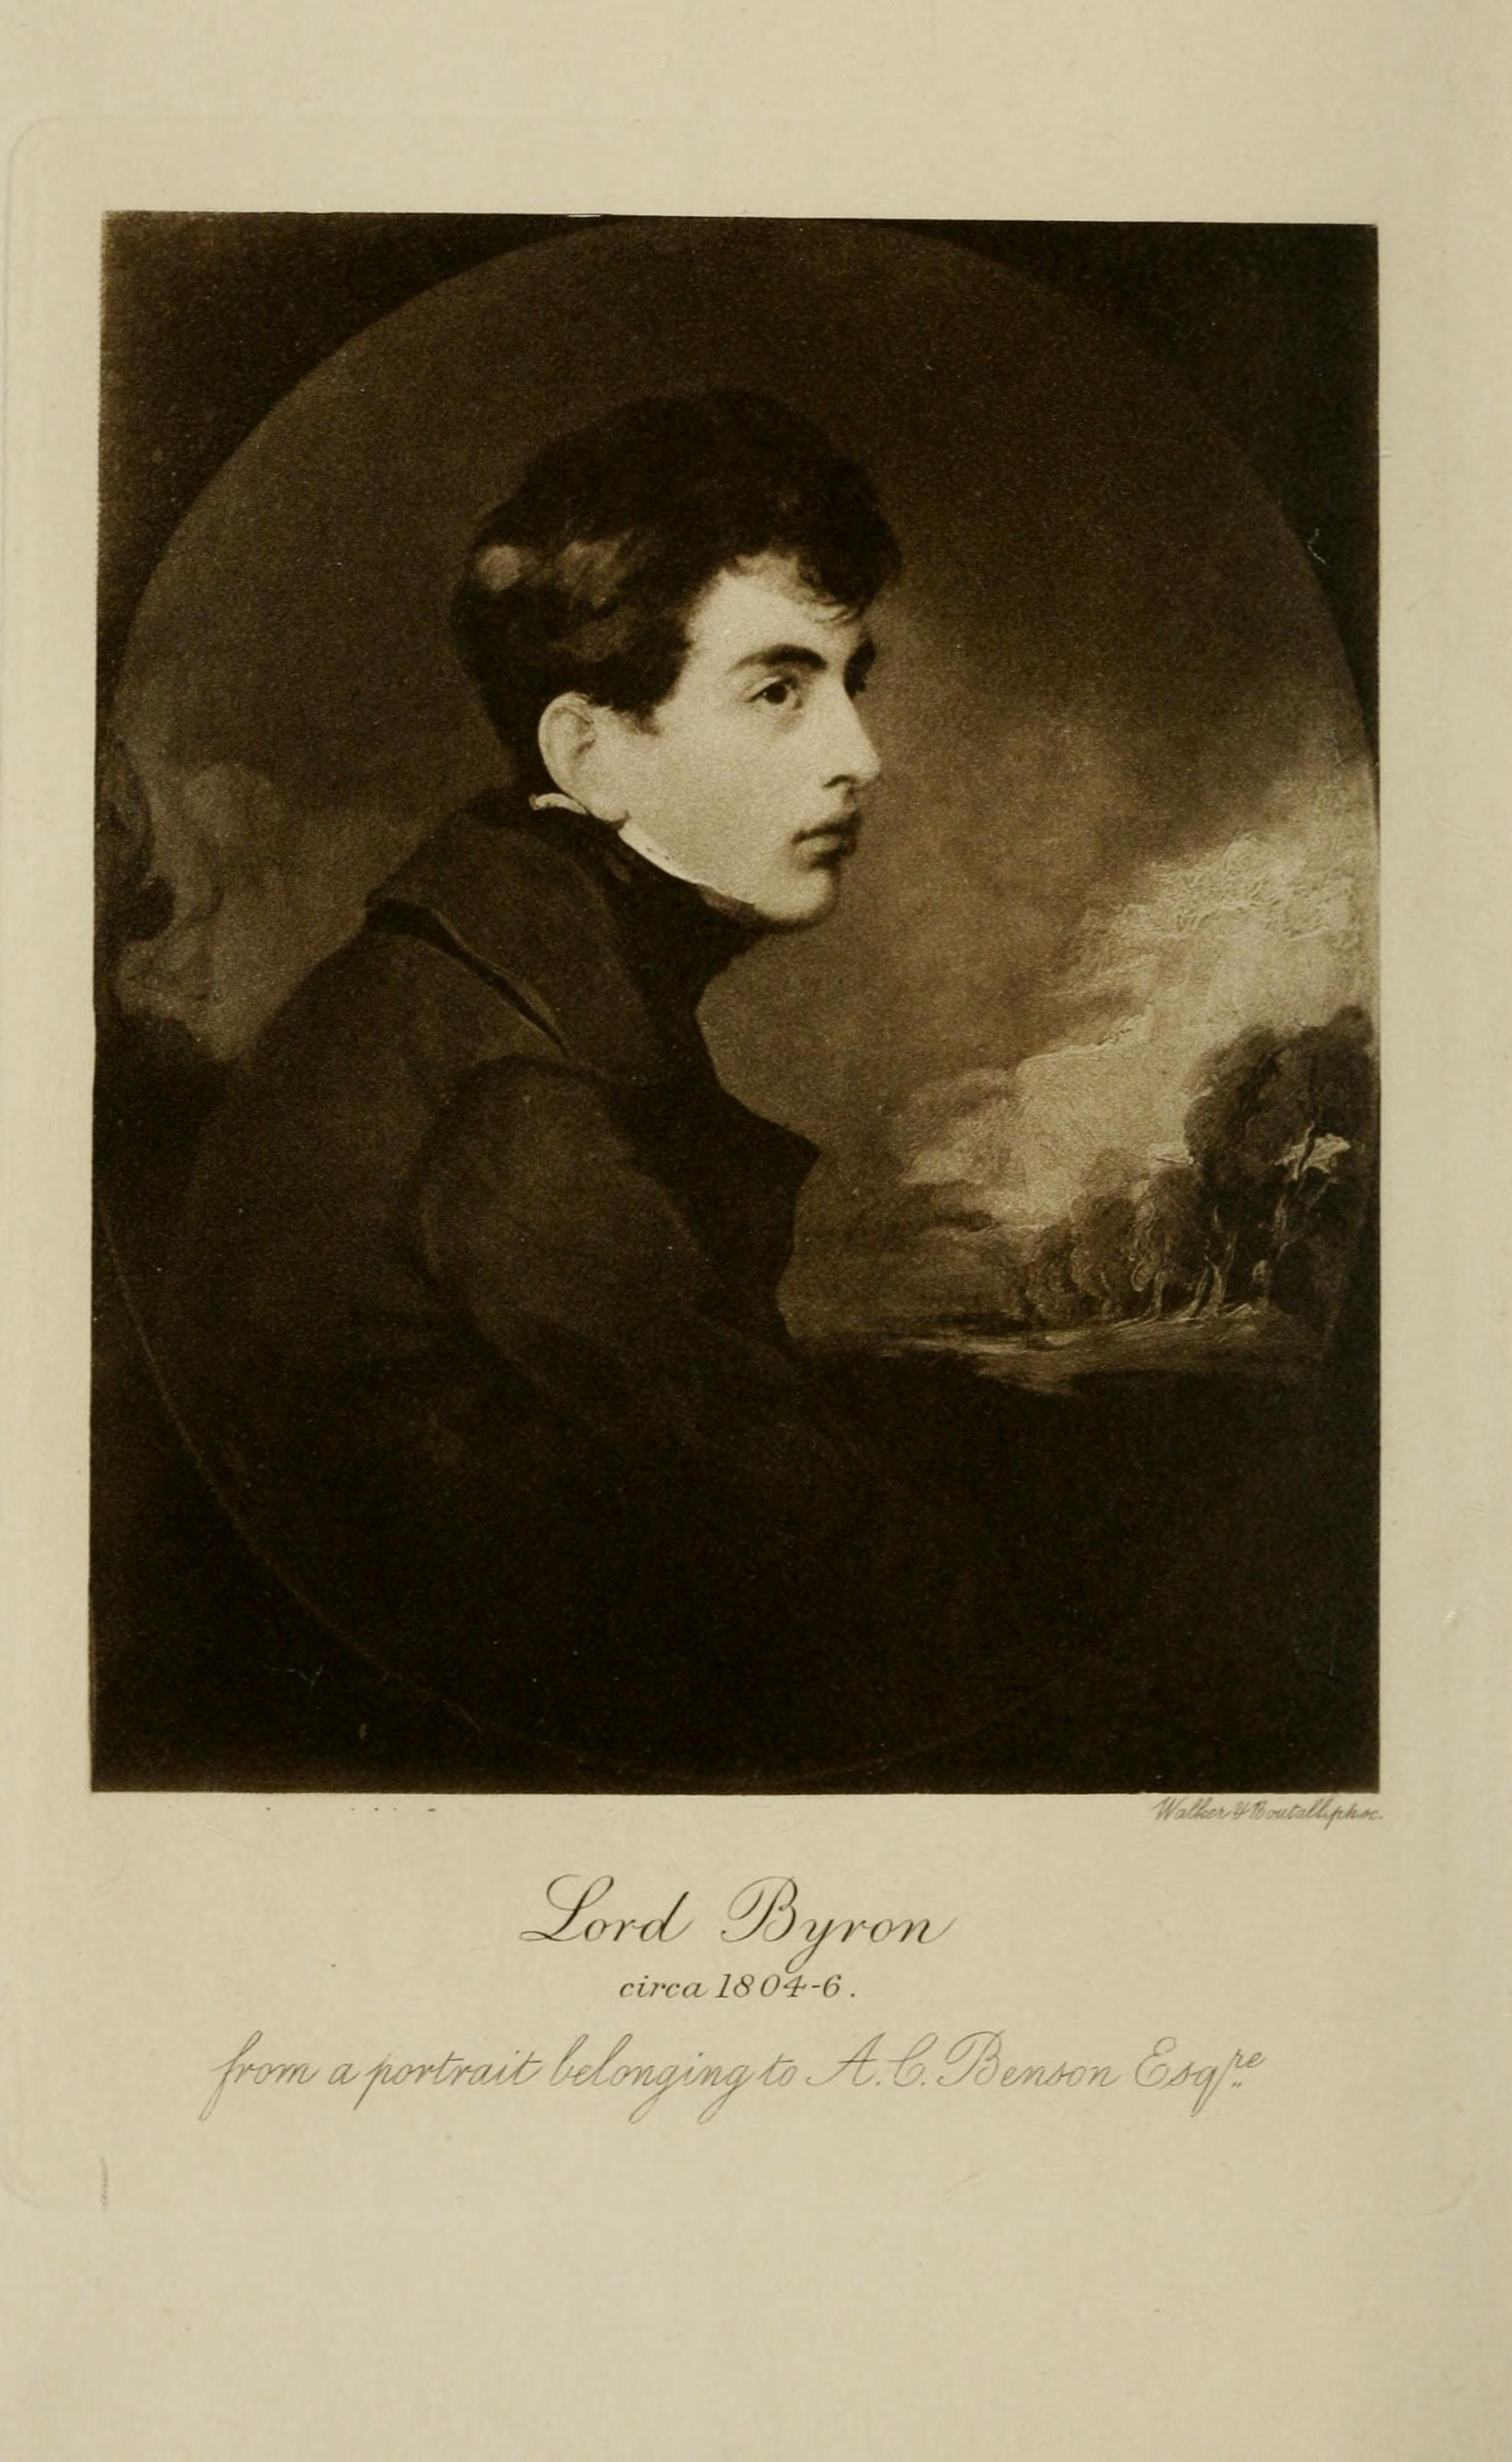 lord byron and his literature Includes seven volumes of byron's complete poetry edited by ernest harley coleridge, the british literary scholar, poet and grandson of samuel taylor coleridge, and six volumes of byron's complete letters and journals edited by rowland e prothero, 1st baron ernle, the british agricultural expert, administrator, journalist,.